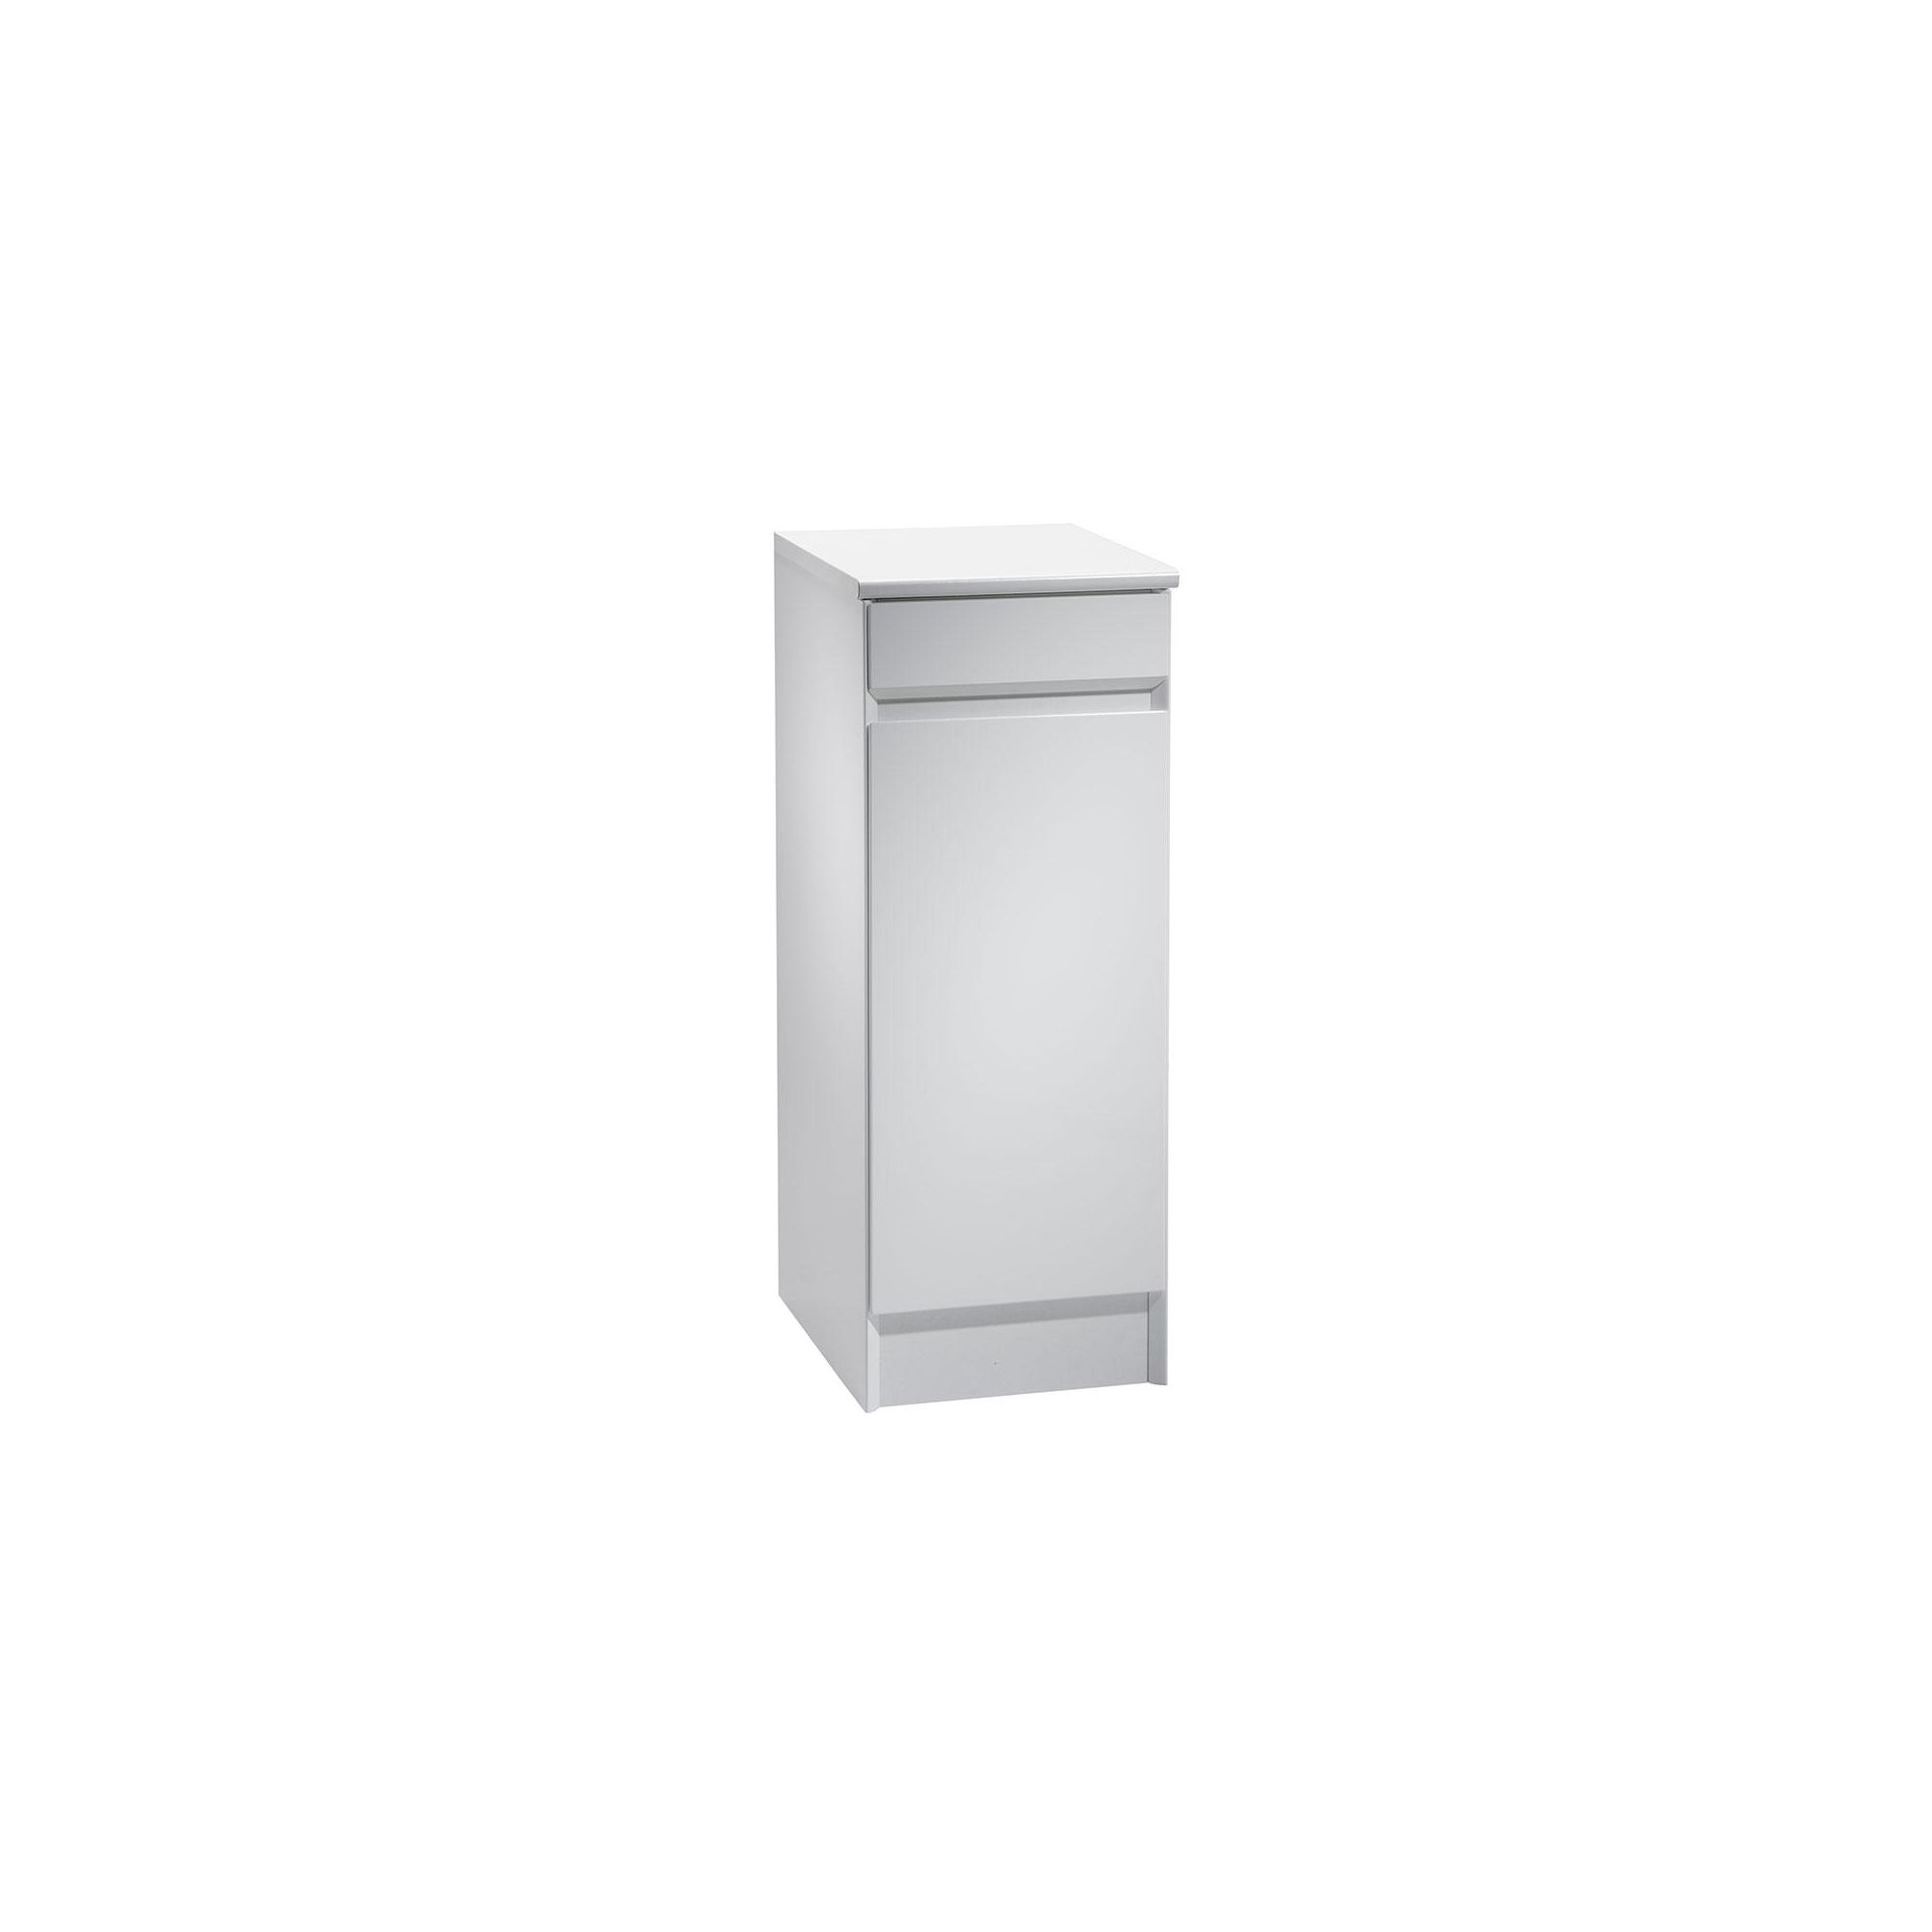 Tavistock Sharp White Floor Standing Cupboard Unit - 300mm Wide